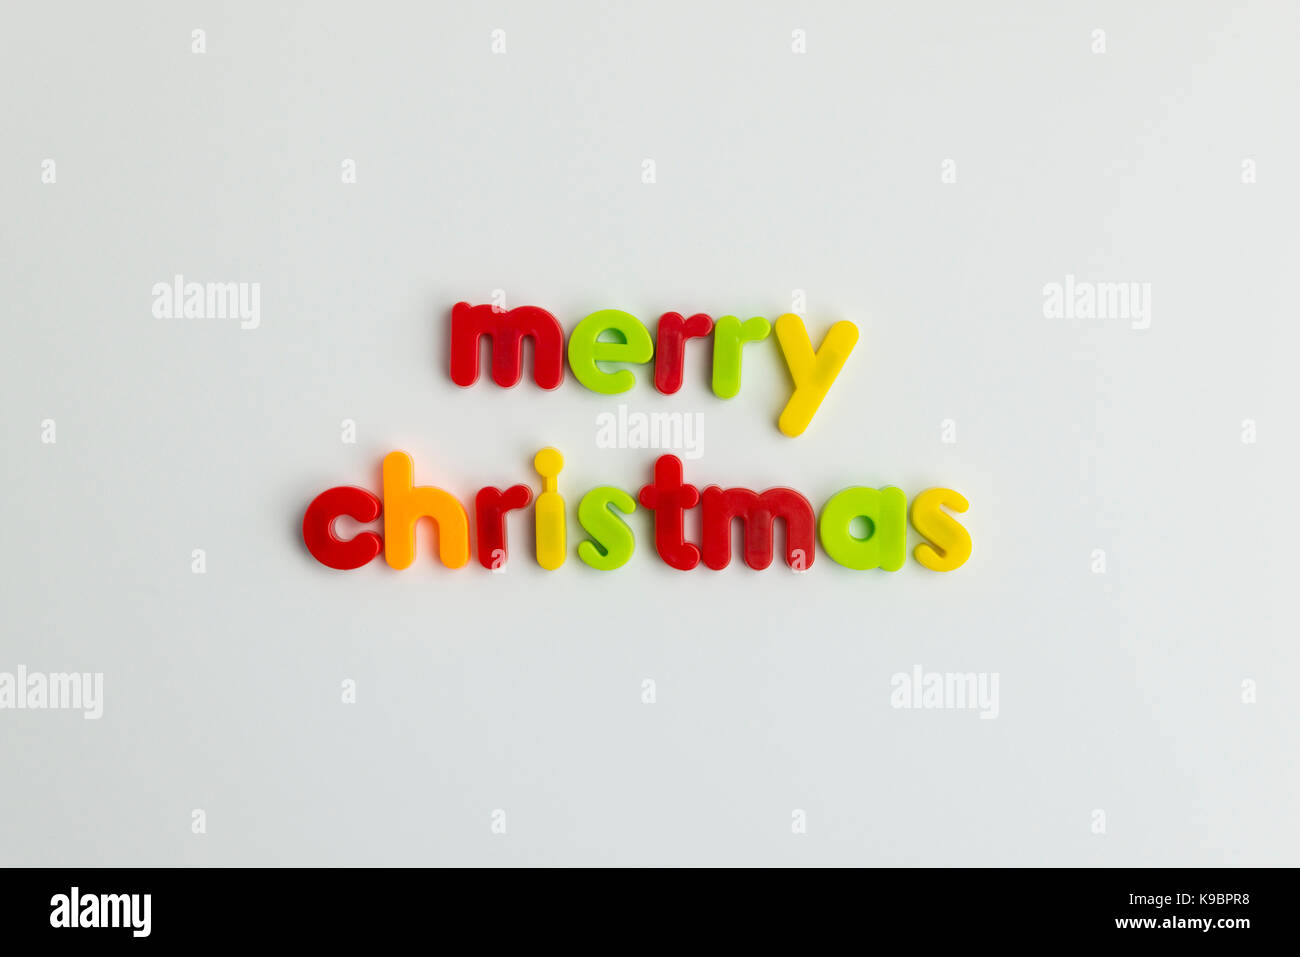 merry christmas words in colourful childrens letters stock image - Merry Christmas Words